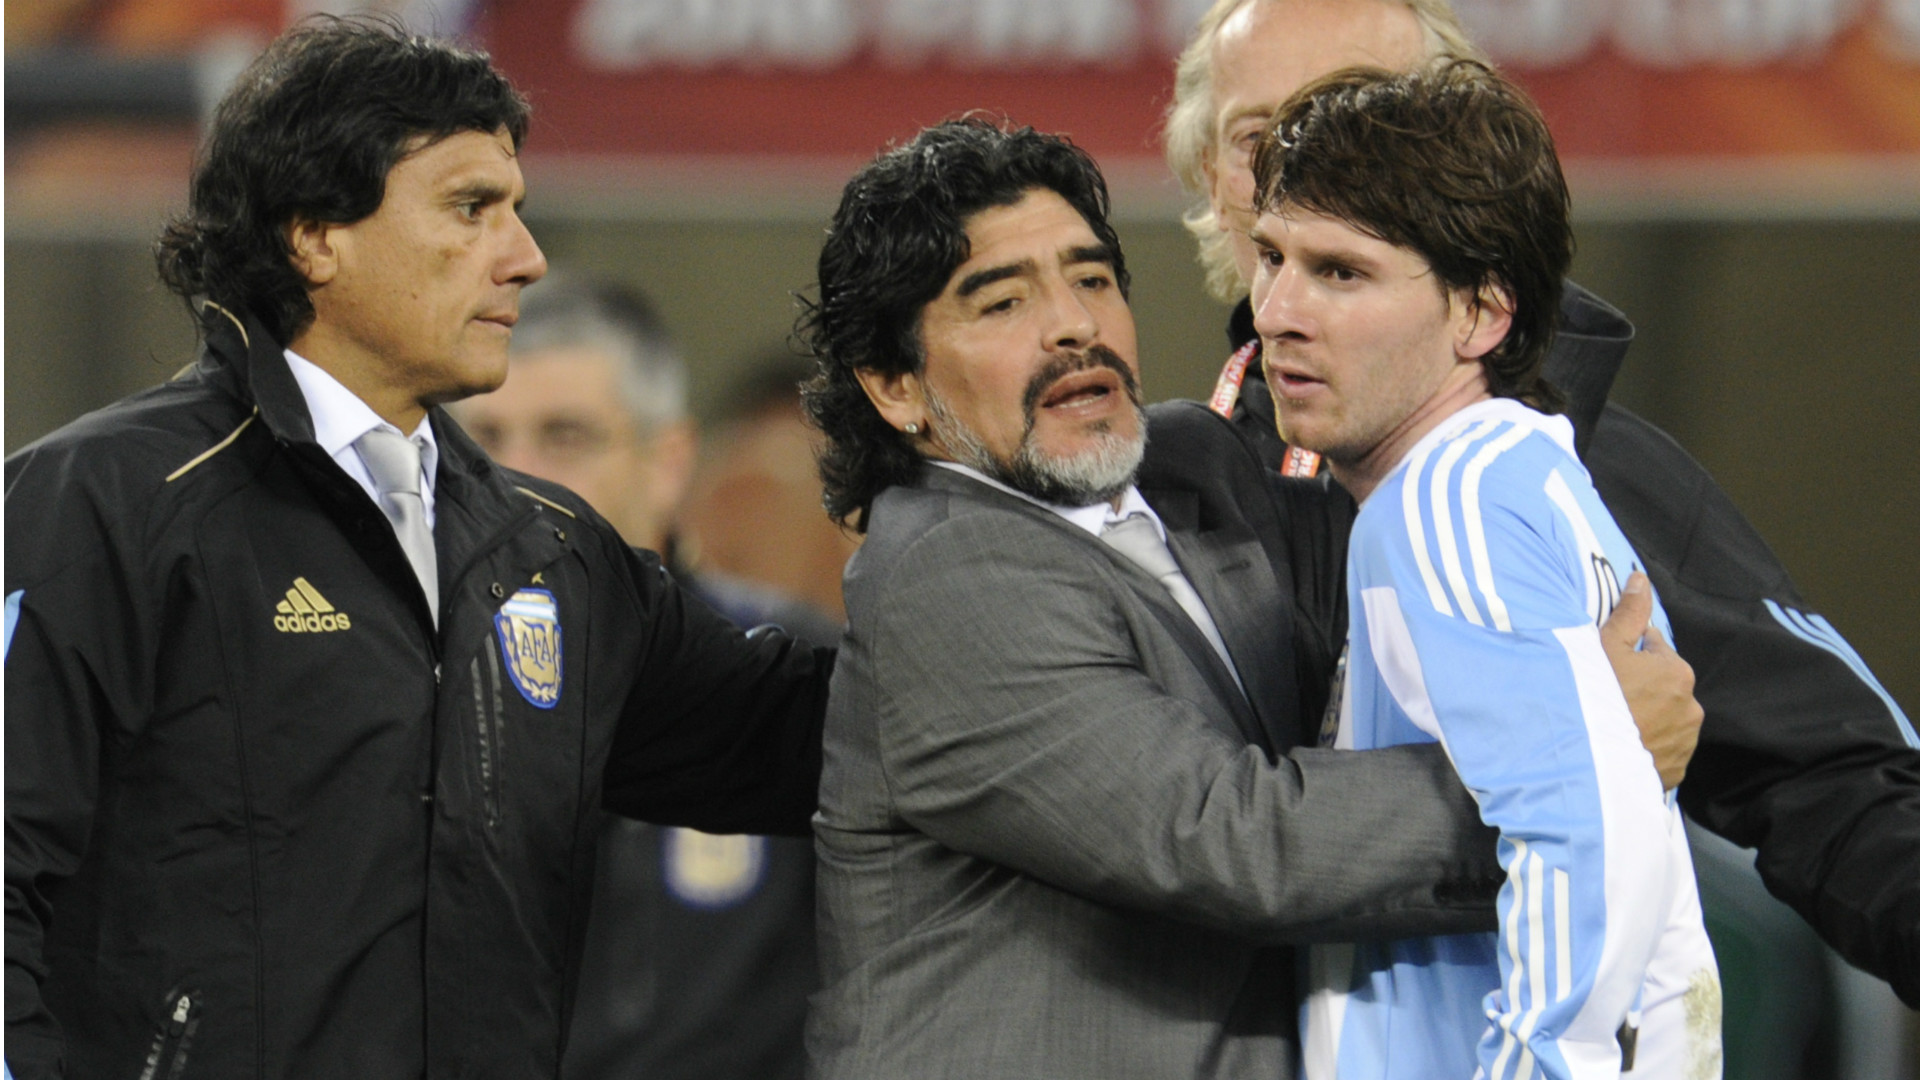 Diego Maradona Messi World Cup 2014